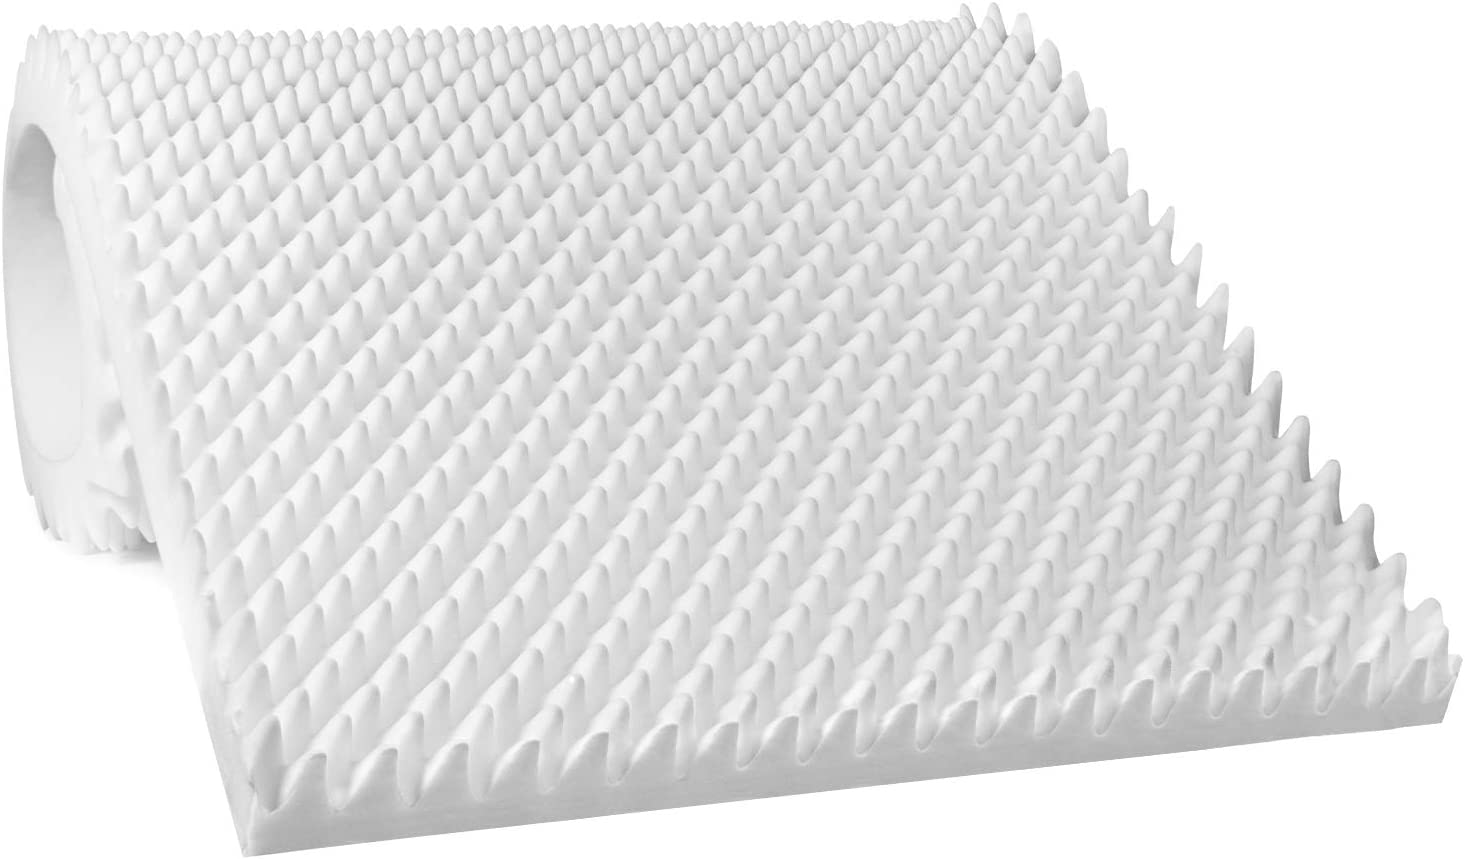 "Egg Crate Mattress Topper, Ventilated, Convoluted Foam for Pressure Sores and Pain Relief, Hypoallergenic, Medical Grade Urethane for Therapeutic Support and Recovery, Hospital Bed Twin (78"" x 34""): Health & Personal Care"